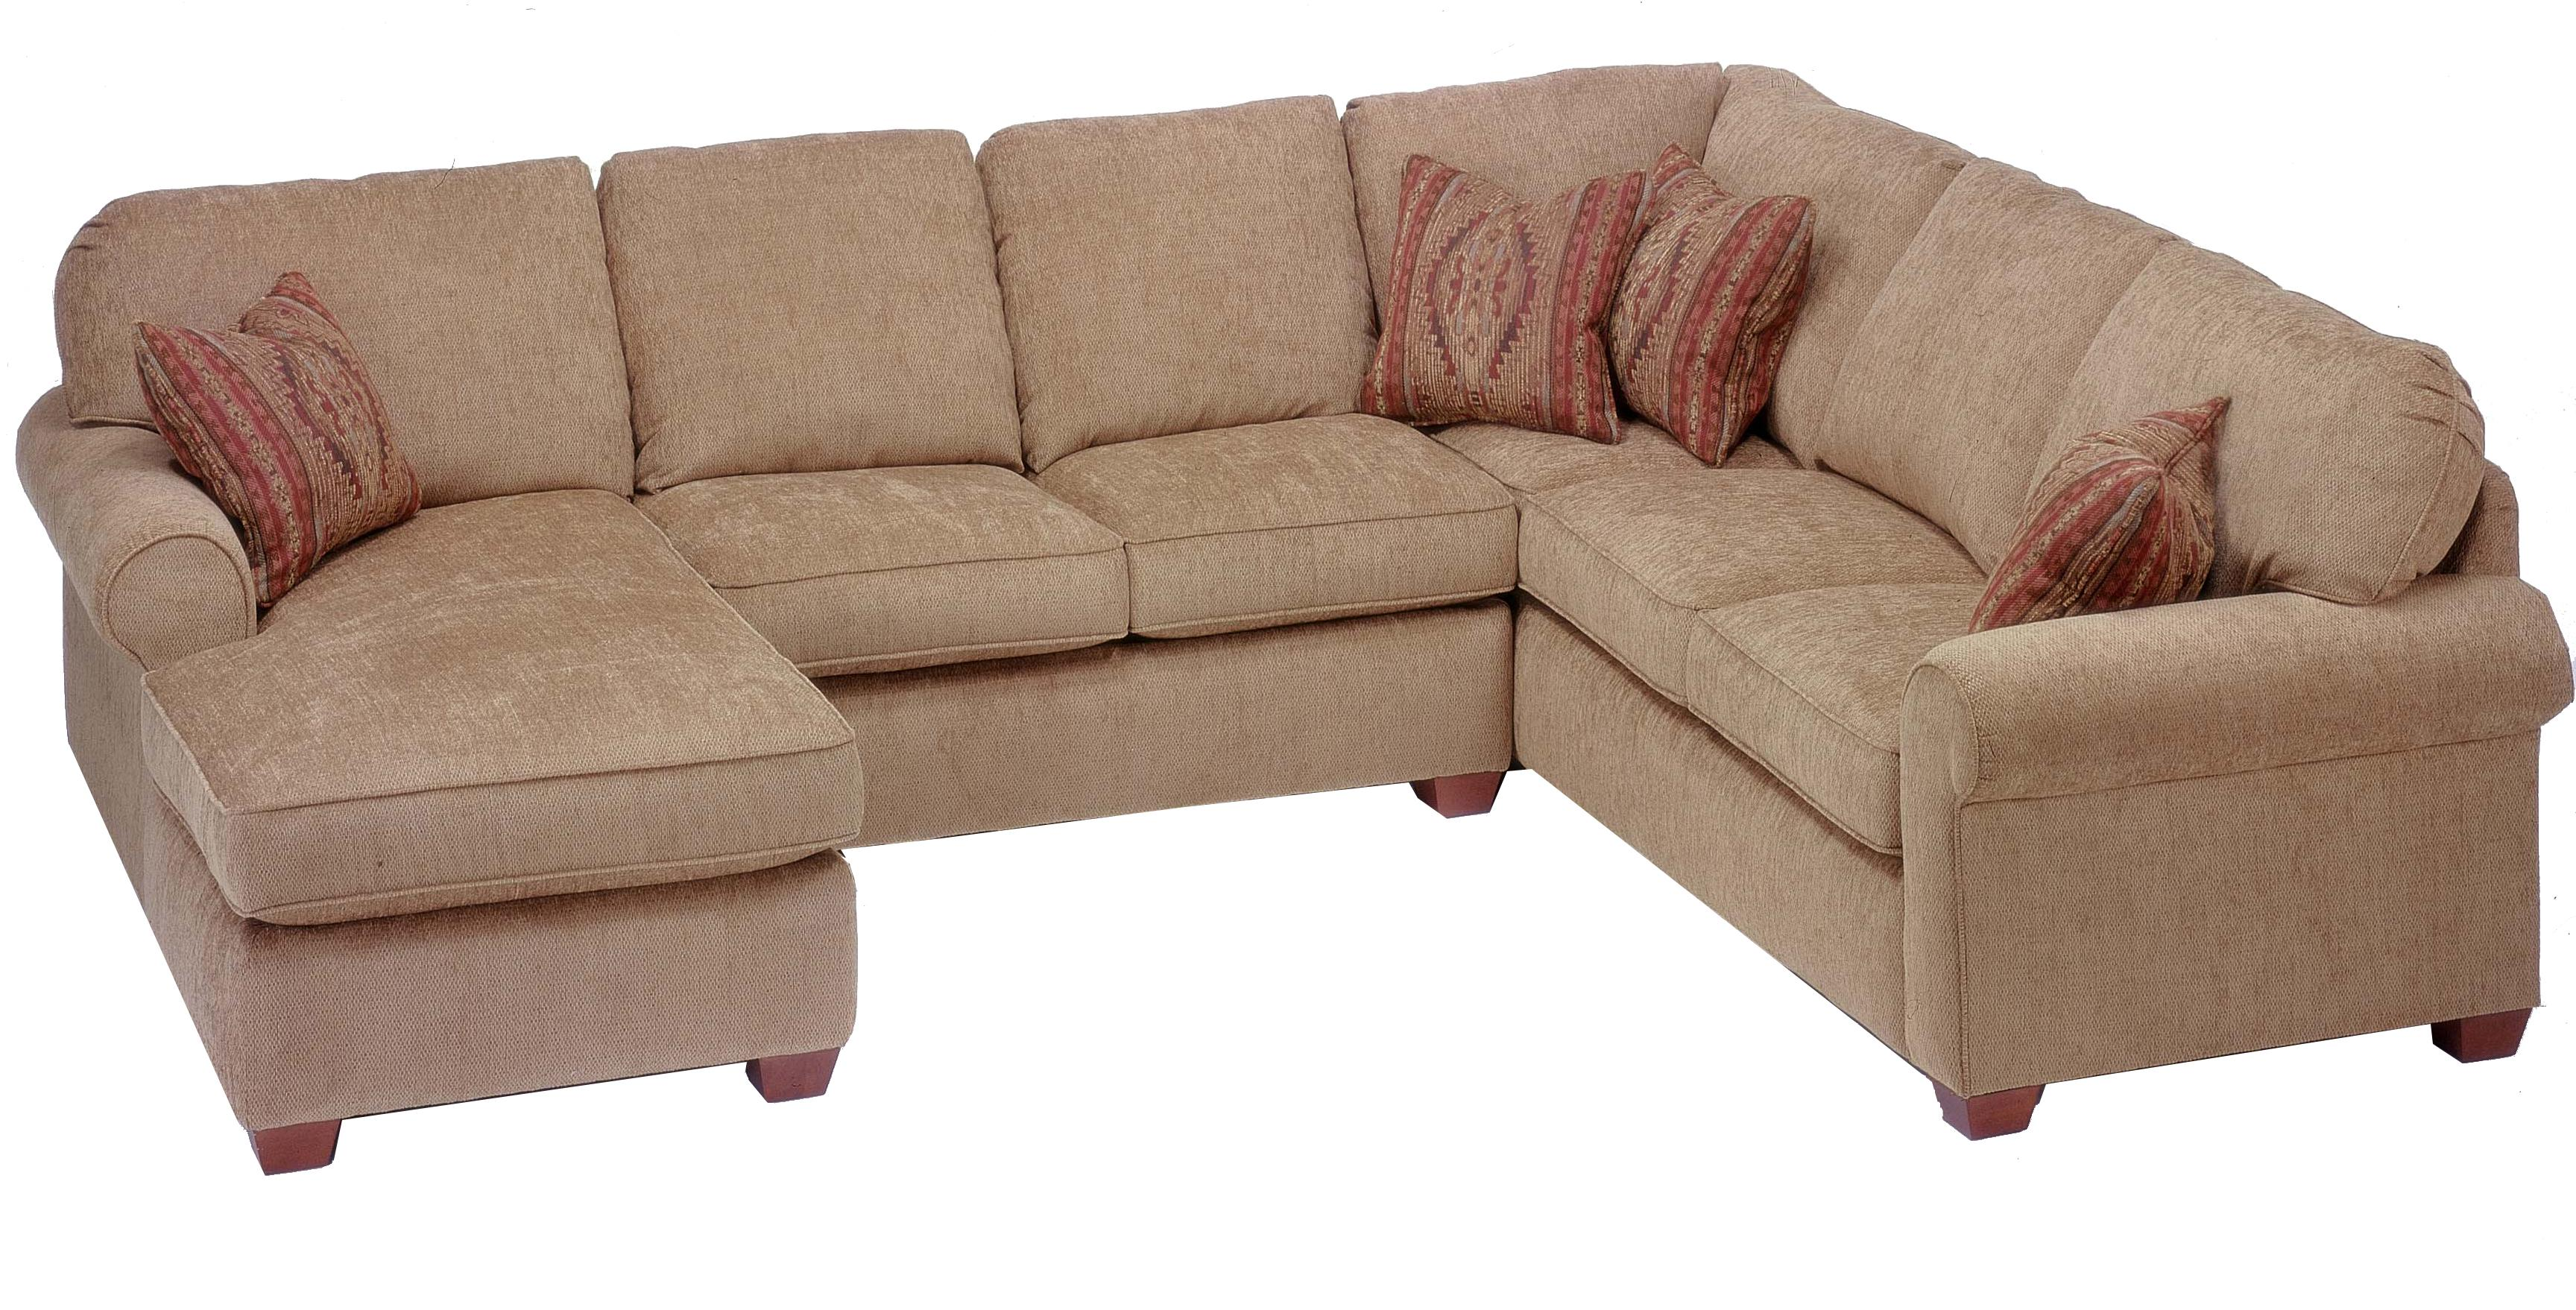 Flexsteel Thornton 3 Piece Sectional with Chaise AHFA Sofa